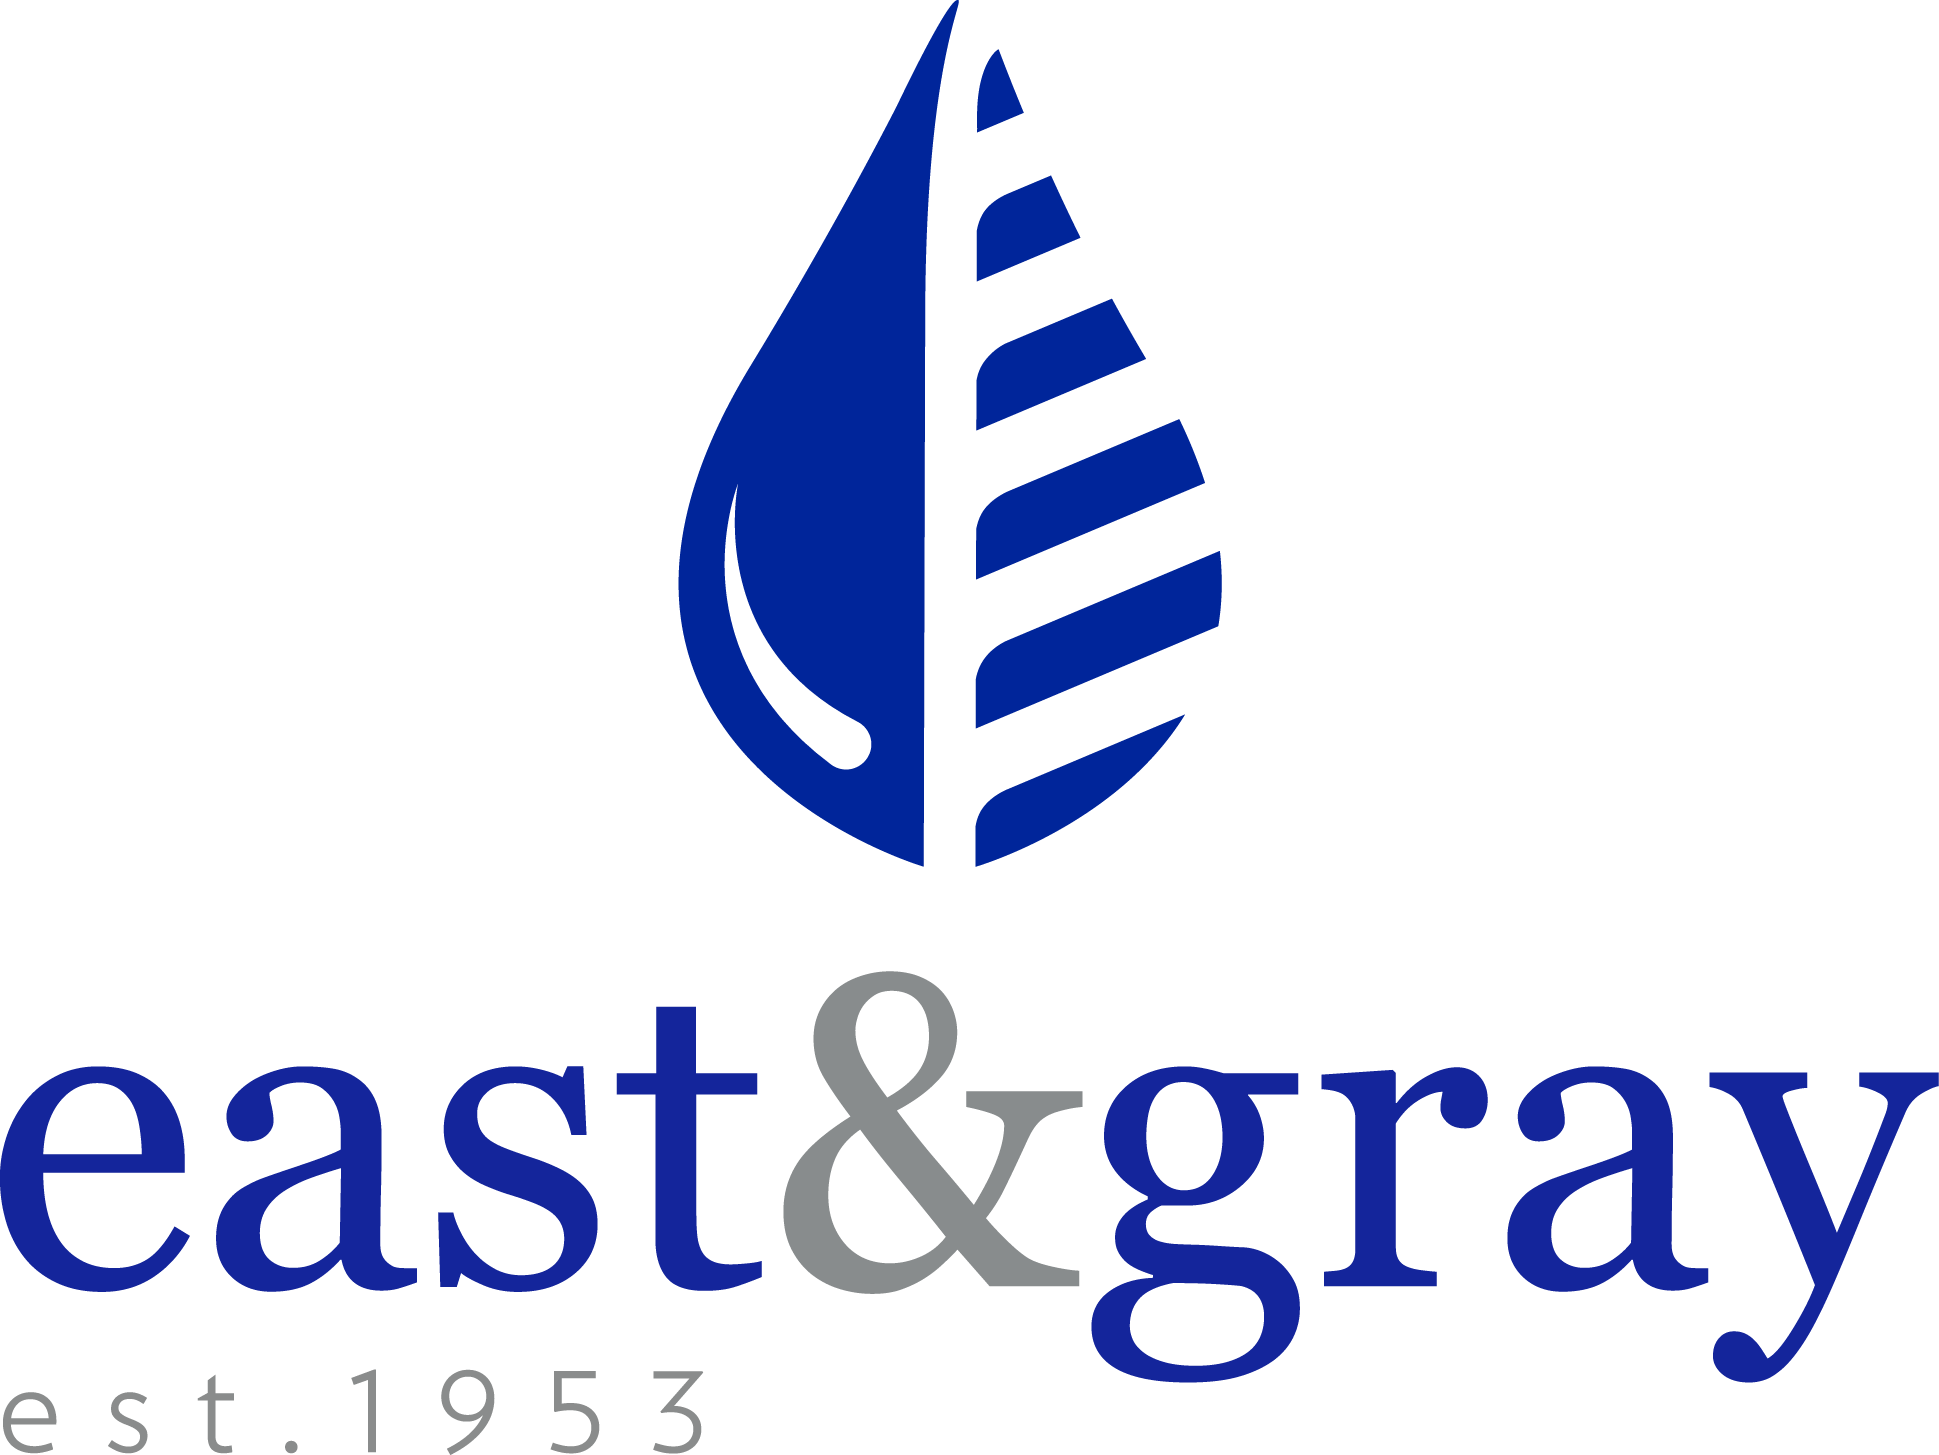 East and Gray